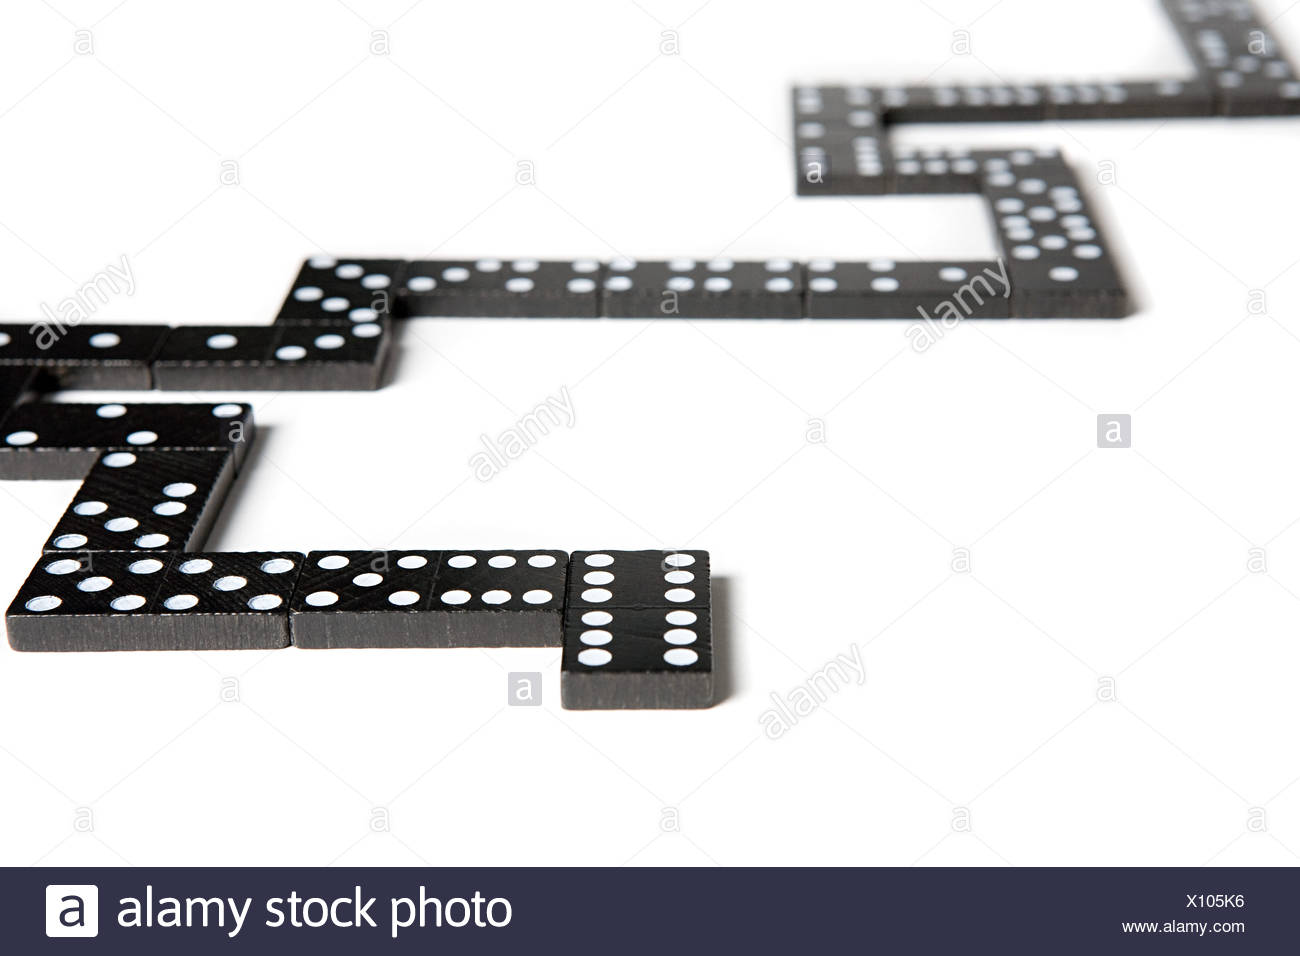 Image Of Dominos Stock Photos & Image Of Dominos Stock Images - Alamy